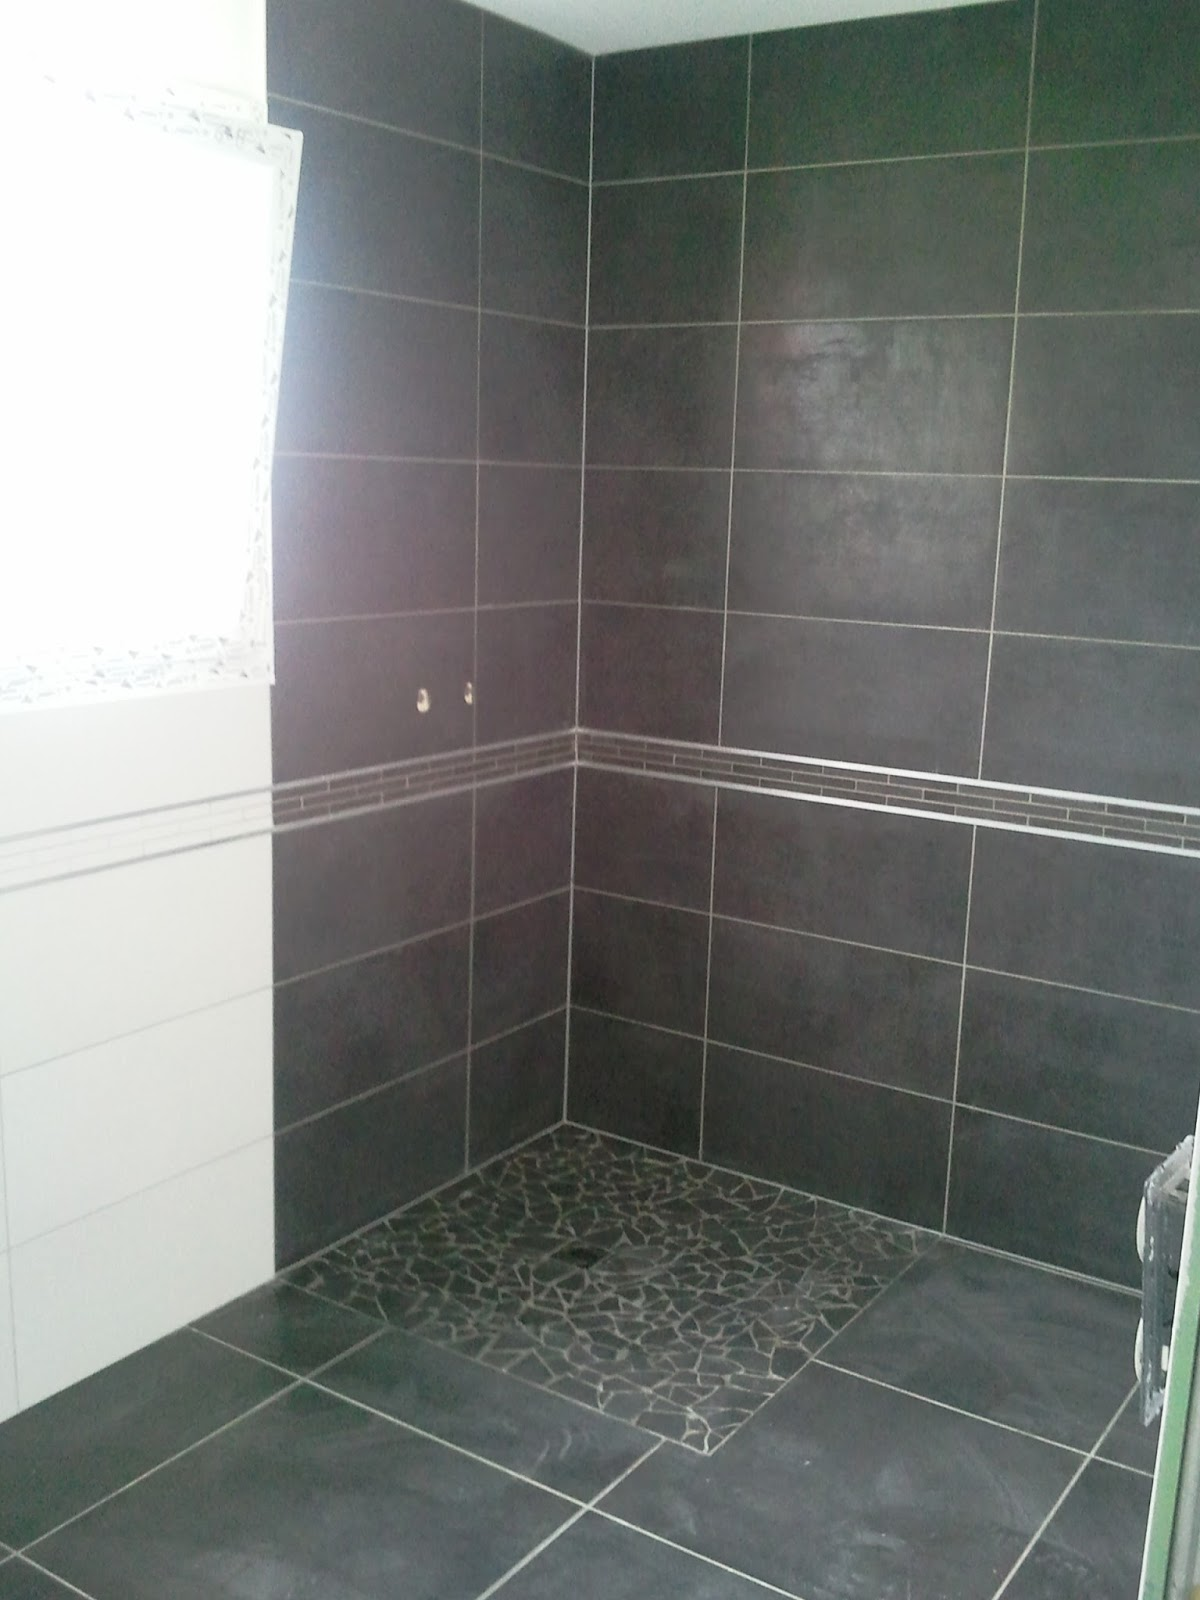 Bricolage de l 39 id e la r alisation douche l for Douche italienne photo